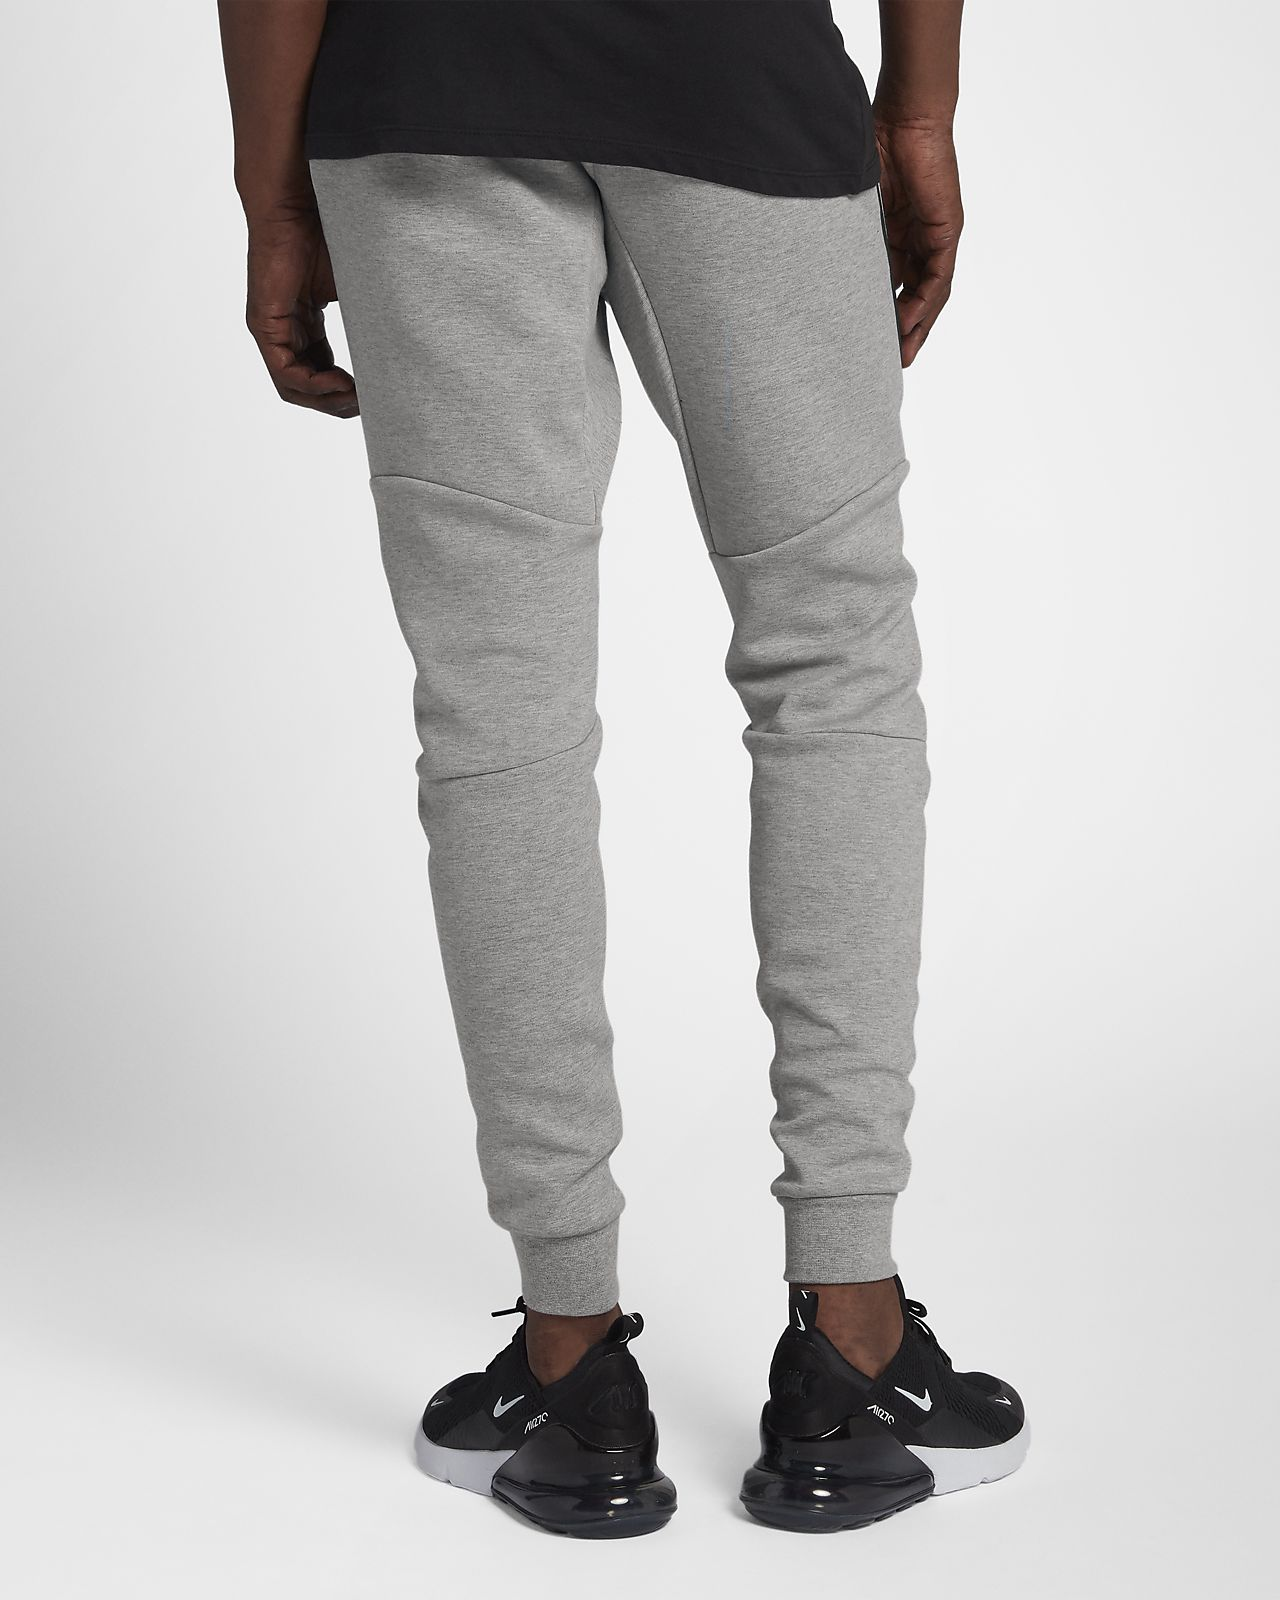 1444fe0645 Nike Sportswear Tech Fleece Men s Joggers. Nike.com